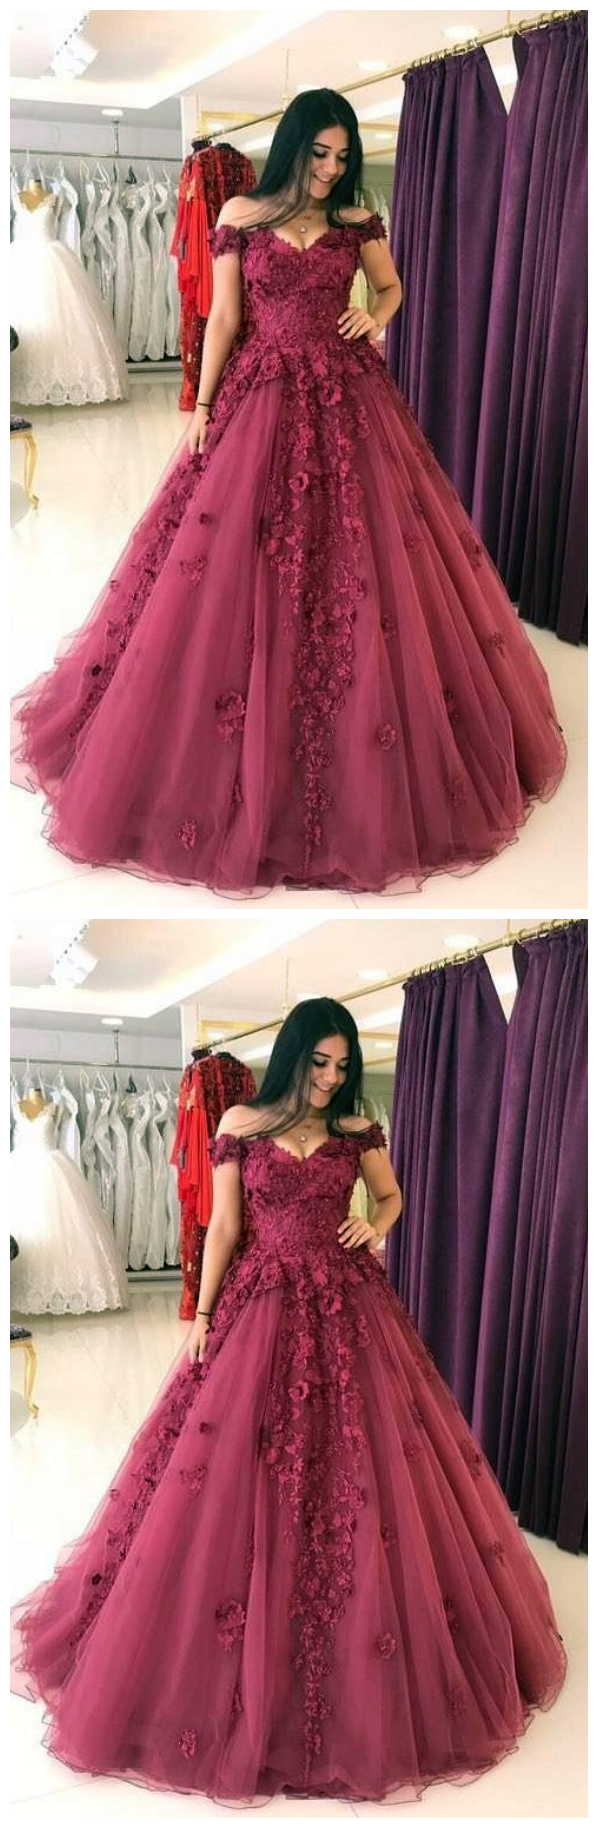 Lace appliques prom dresses ball gownstulle quinceanera outfits